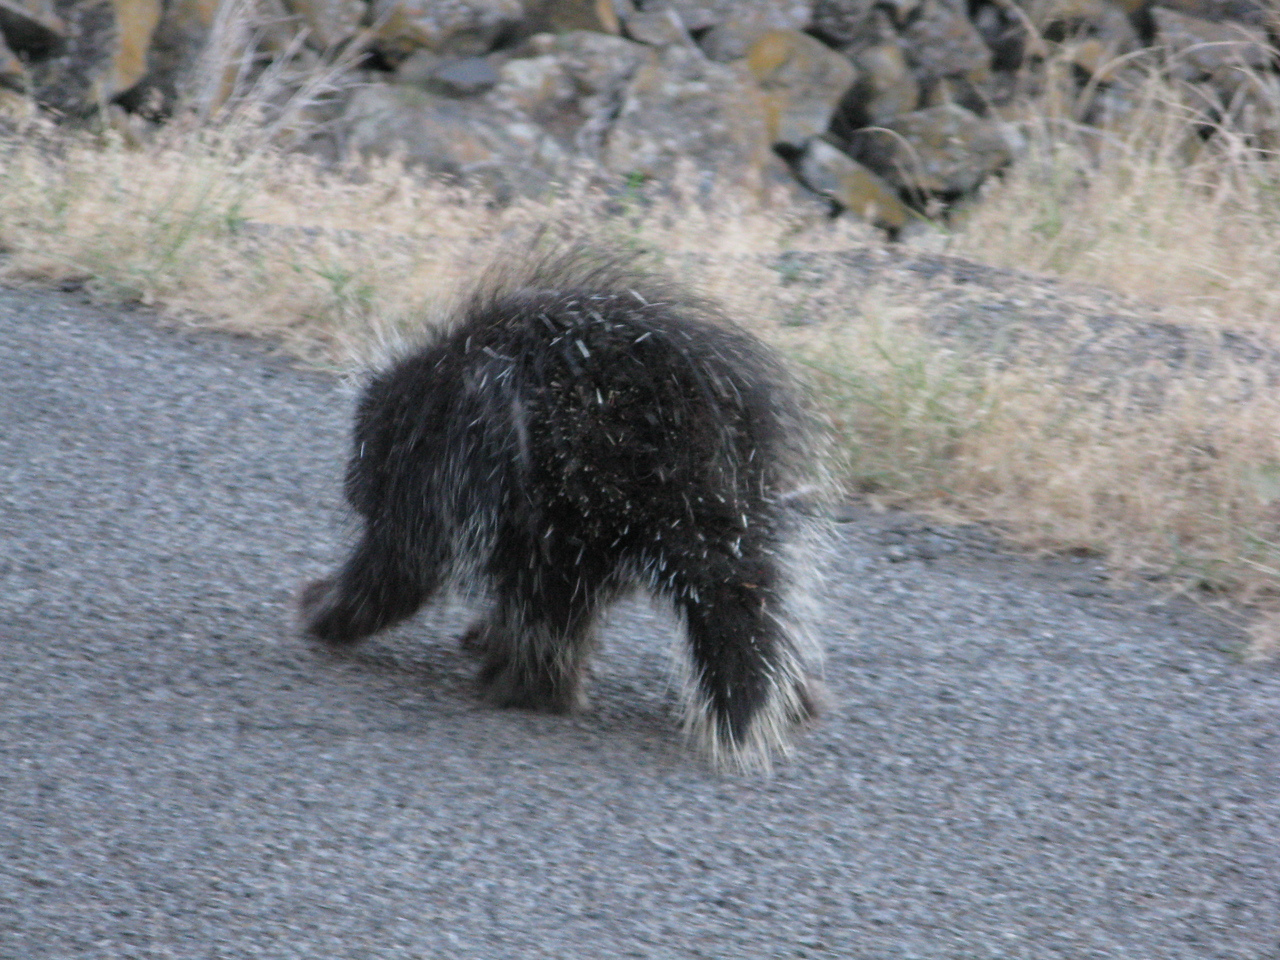 As I was driving back up the hill, I saw this critter strolling across the road.